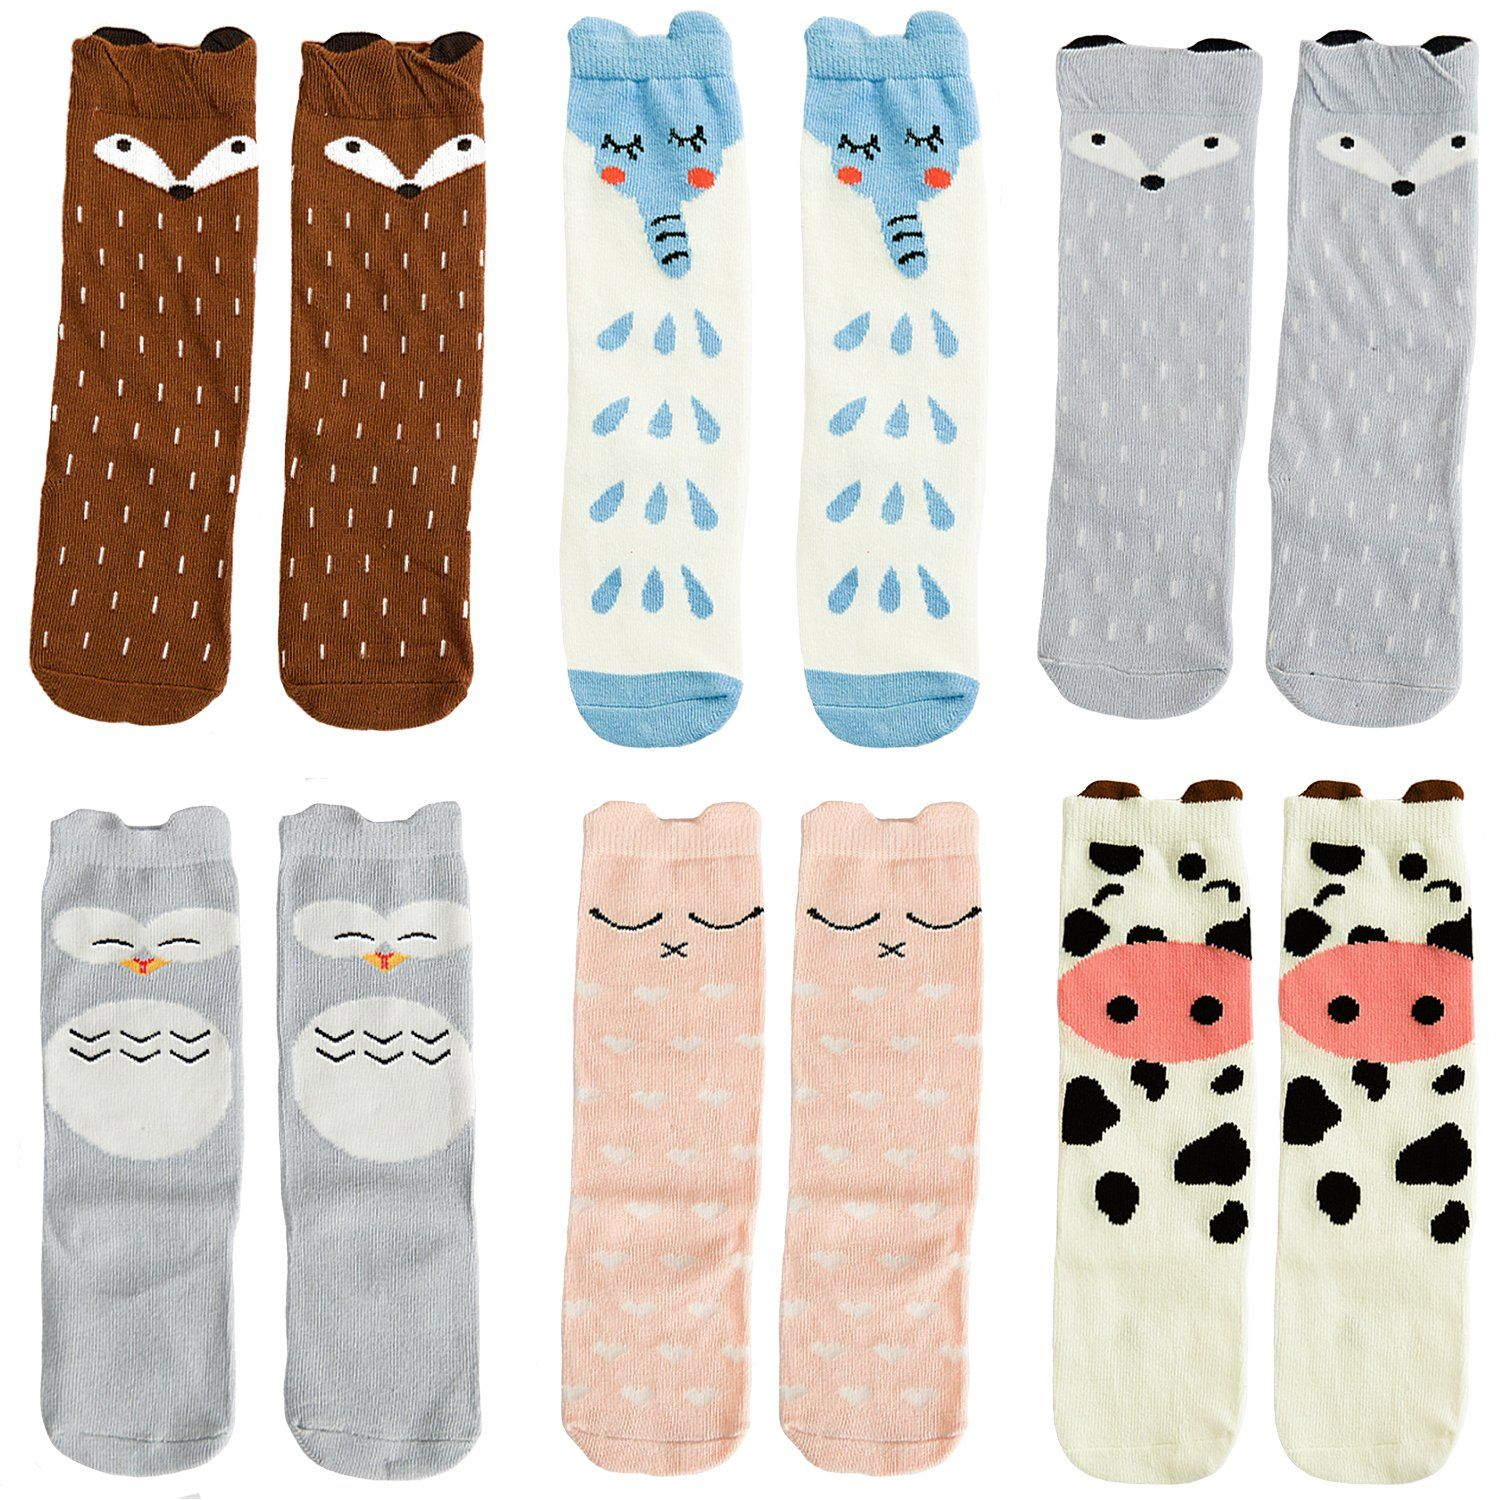 Elesa Miracle 6 Pairs Unisex Baby Knee High Stocking Baby Socks Baby